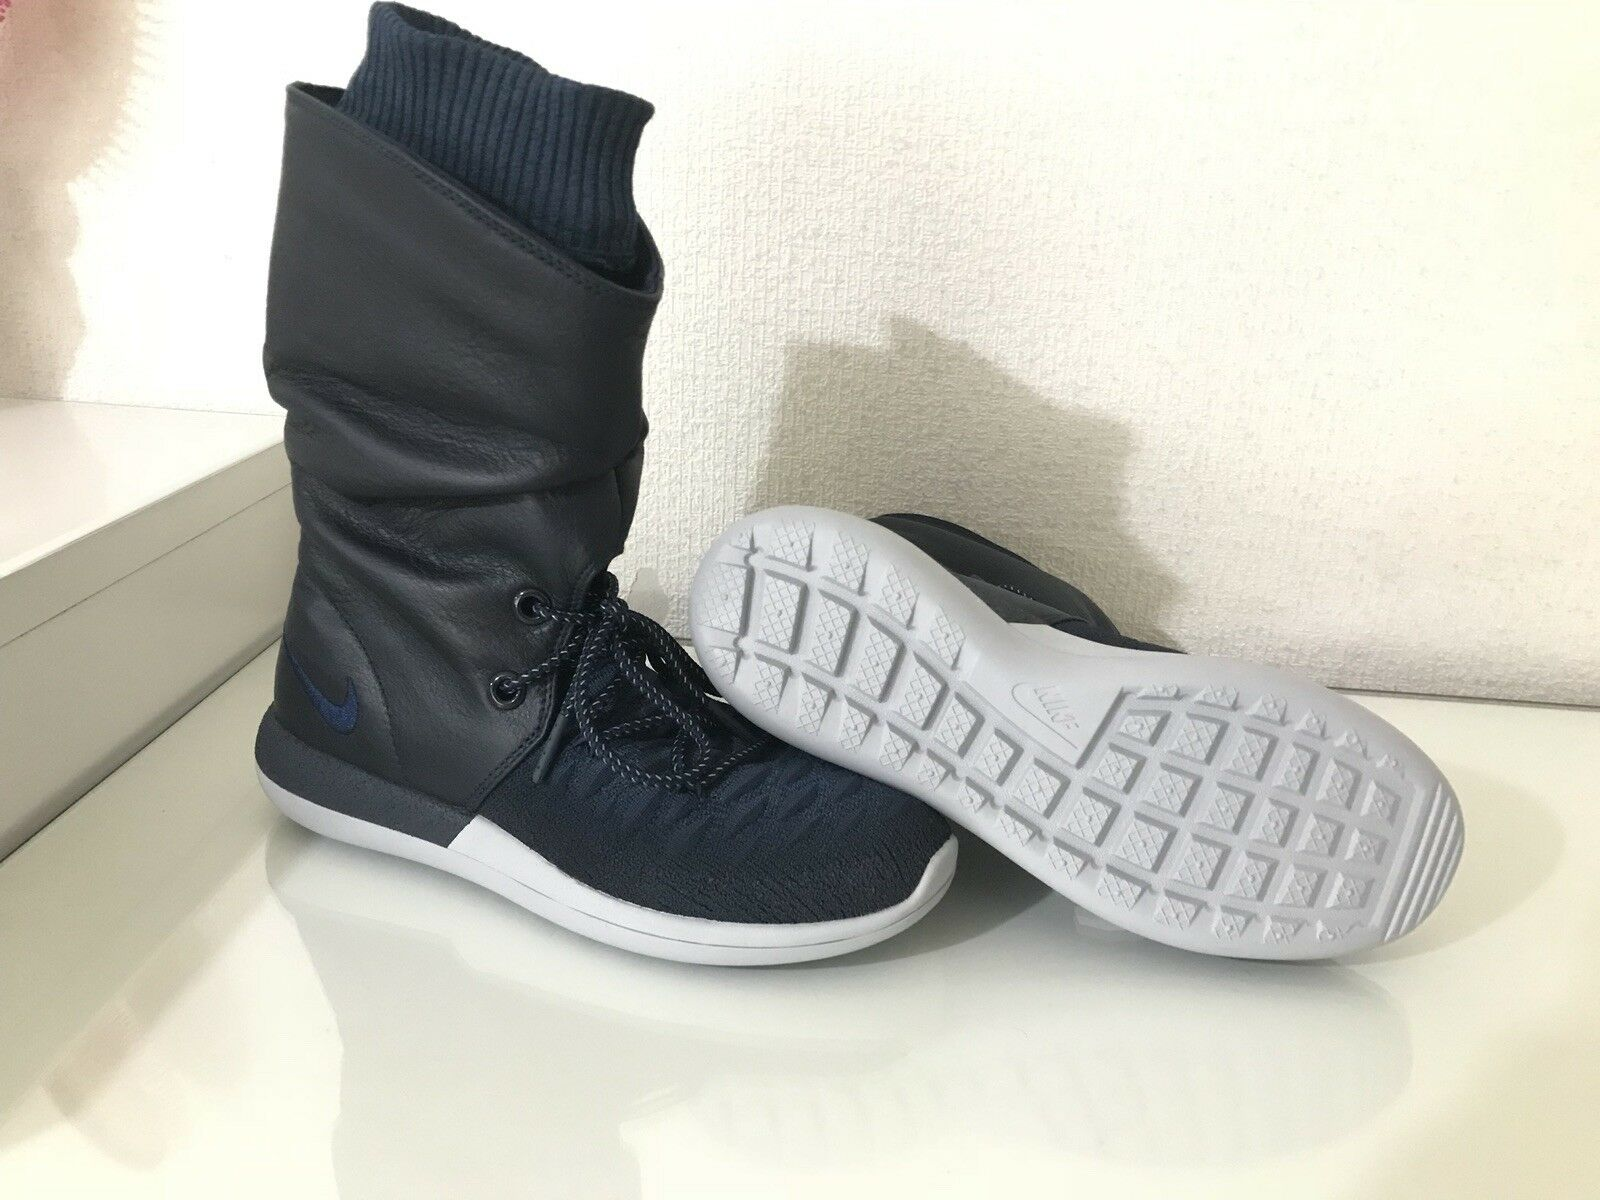 Nike W Roshe Two Hi Flyknit Mid & Navy/ High Tops - College Navy/ & College Navy  uk4 0b66e4